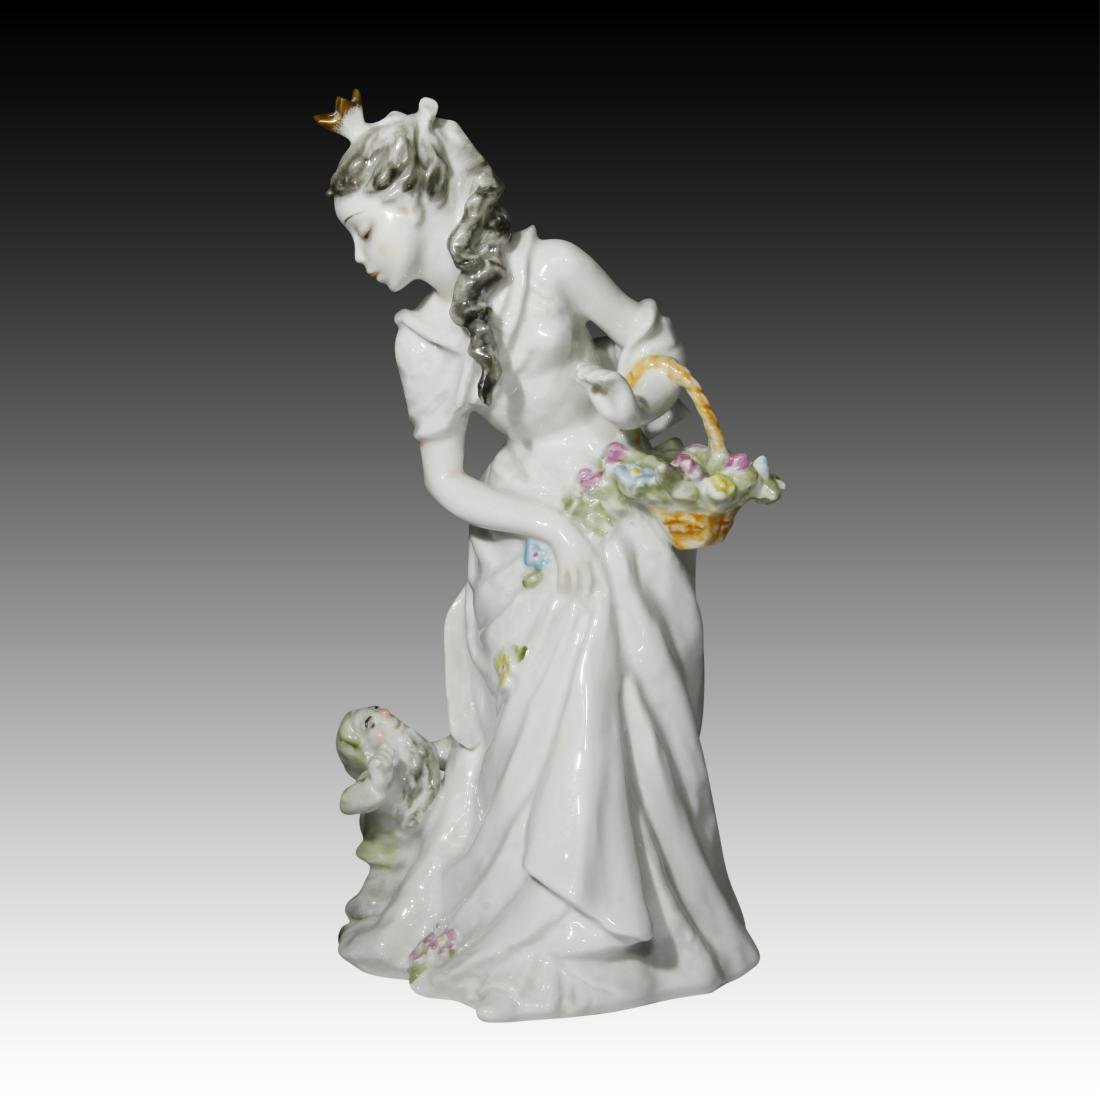 Rosenthal Figurine of Snow White with a Dwarf - 2